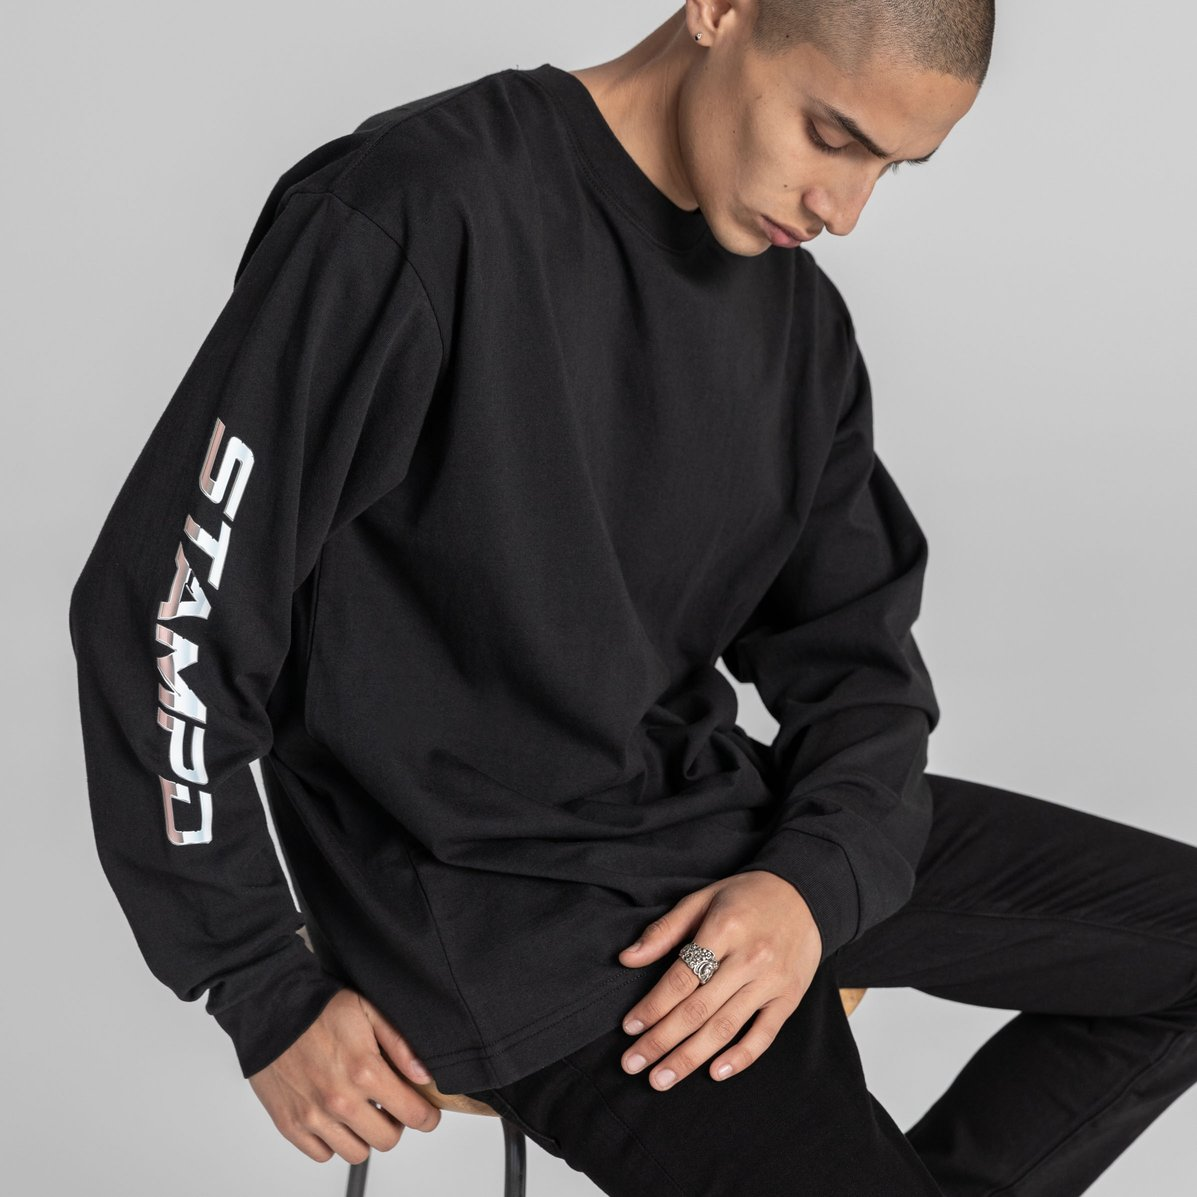 Sebring Long Sleeve / BLACK